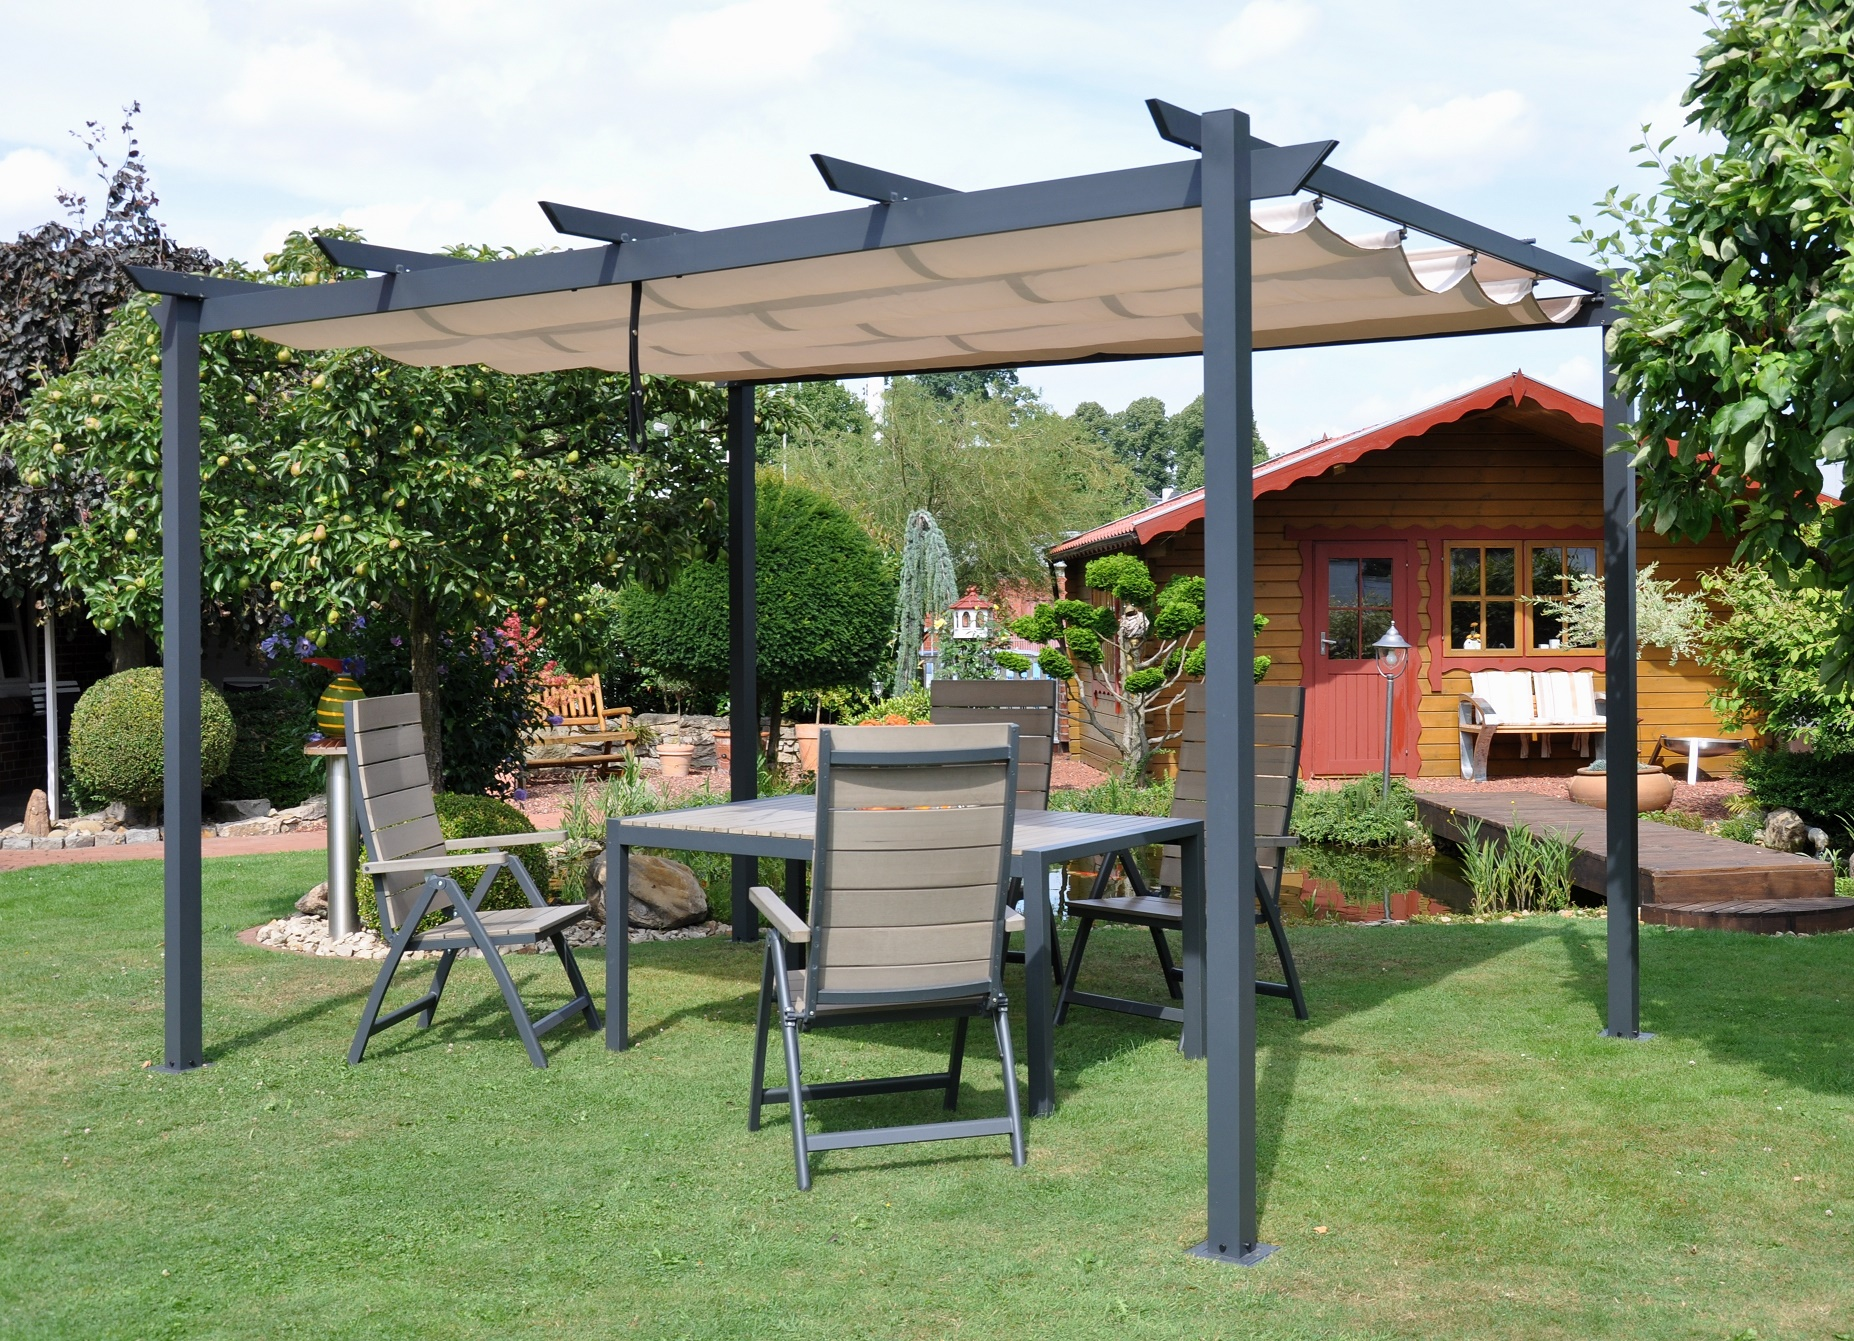 leco pergola 3x4m garten terrasse berdachung pavillon. Black Bedroom Furniture Sets. Home Design Ideas